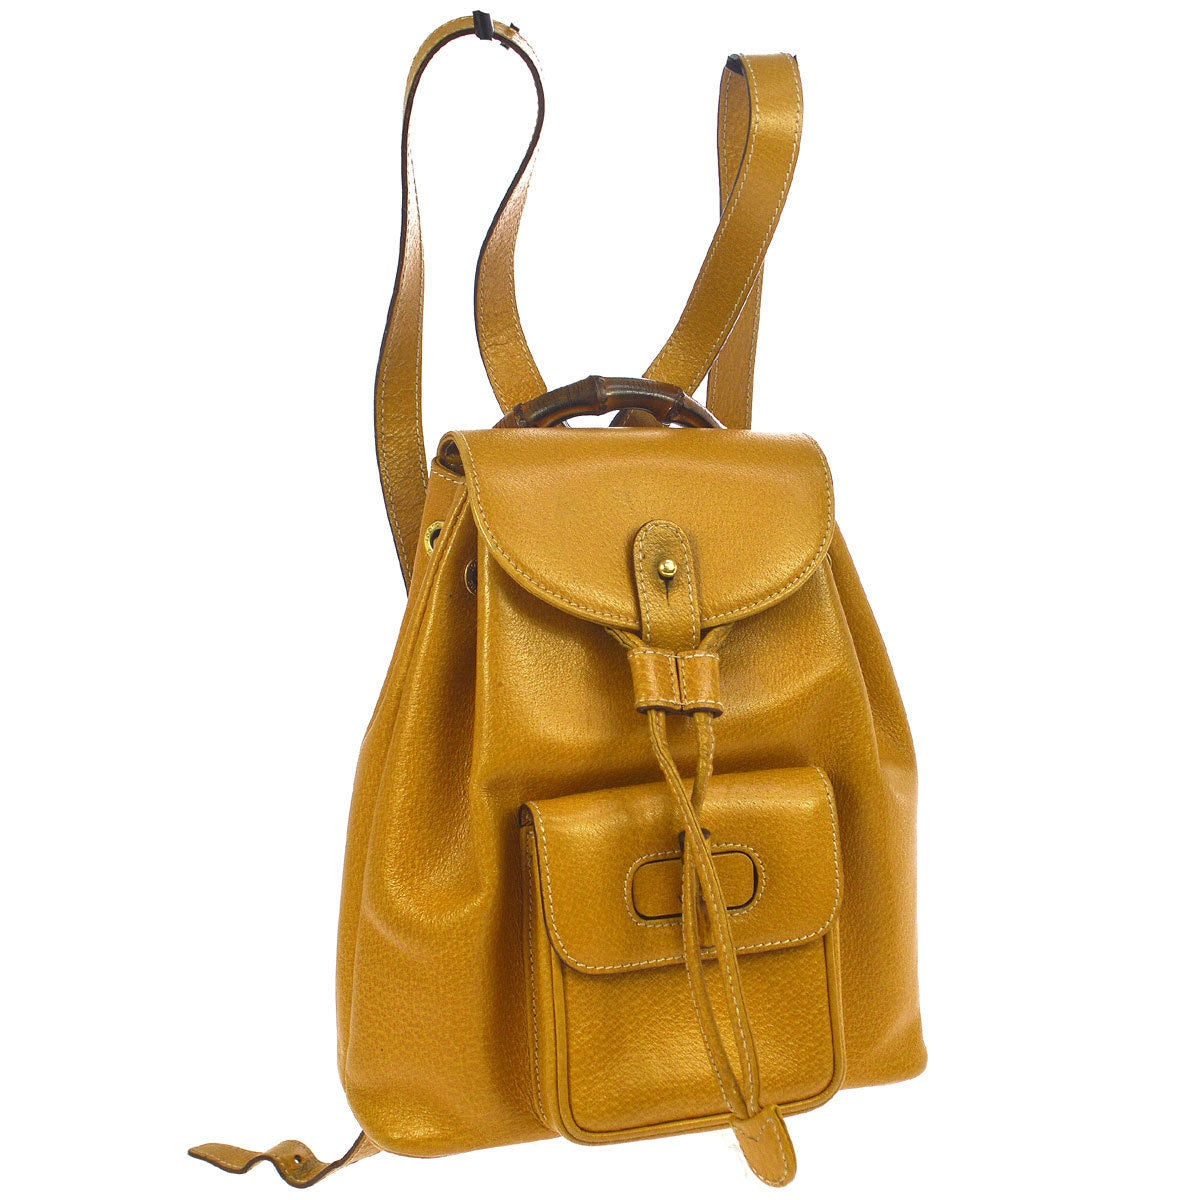 94b3a9f4c38d Gucci Bamboo Backpack Vintage - Restaurant Grotto Ticino, Pizzeria ...